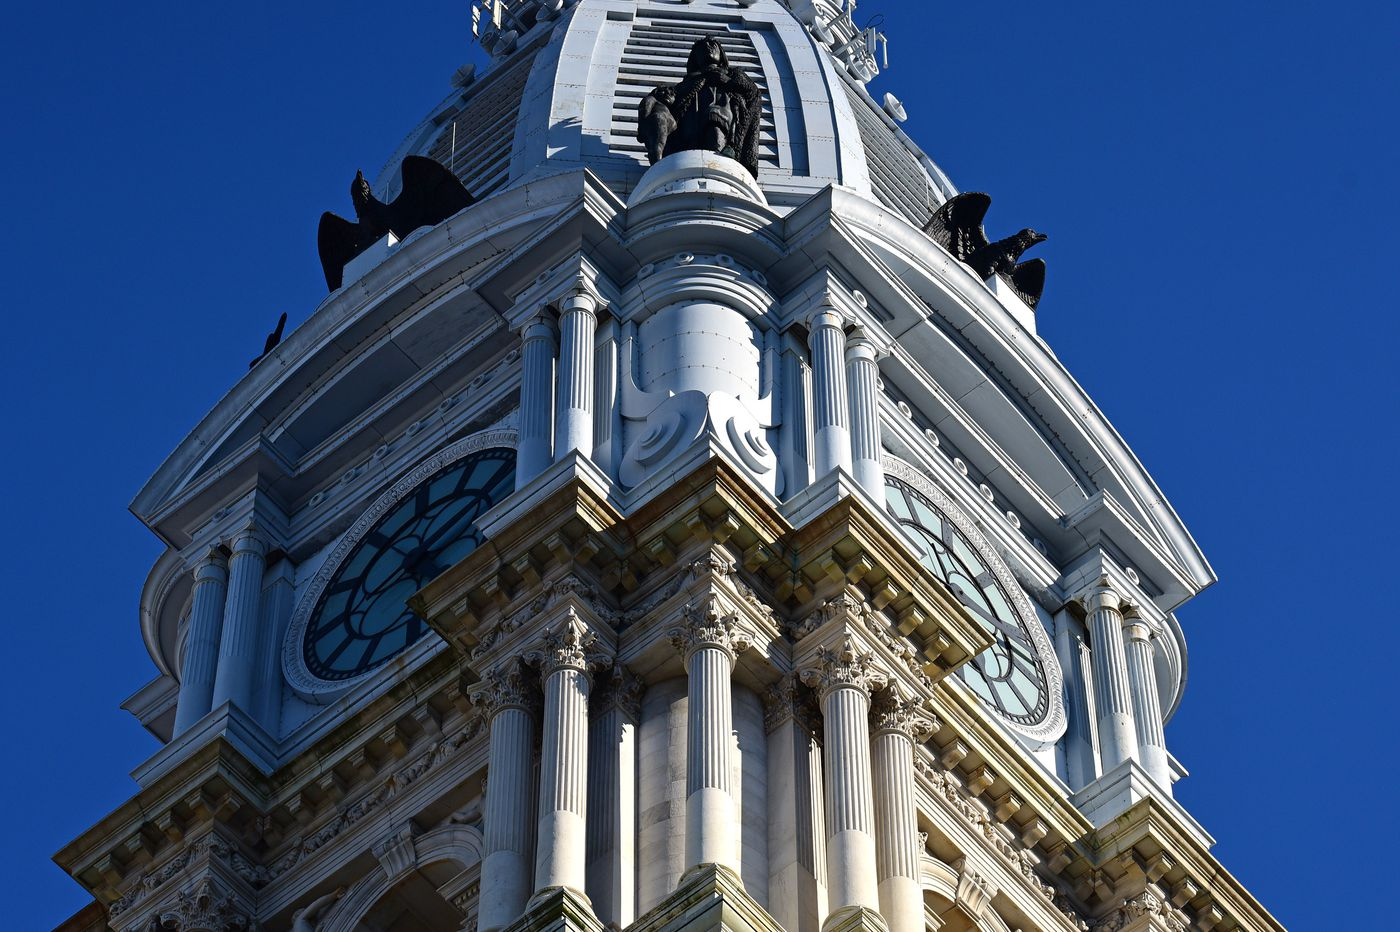 Landlords, safety advocates continue battle over Philly lead abatement bill